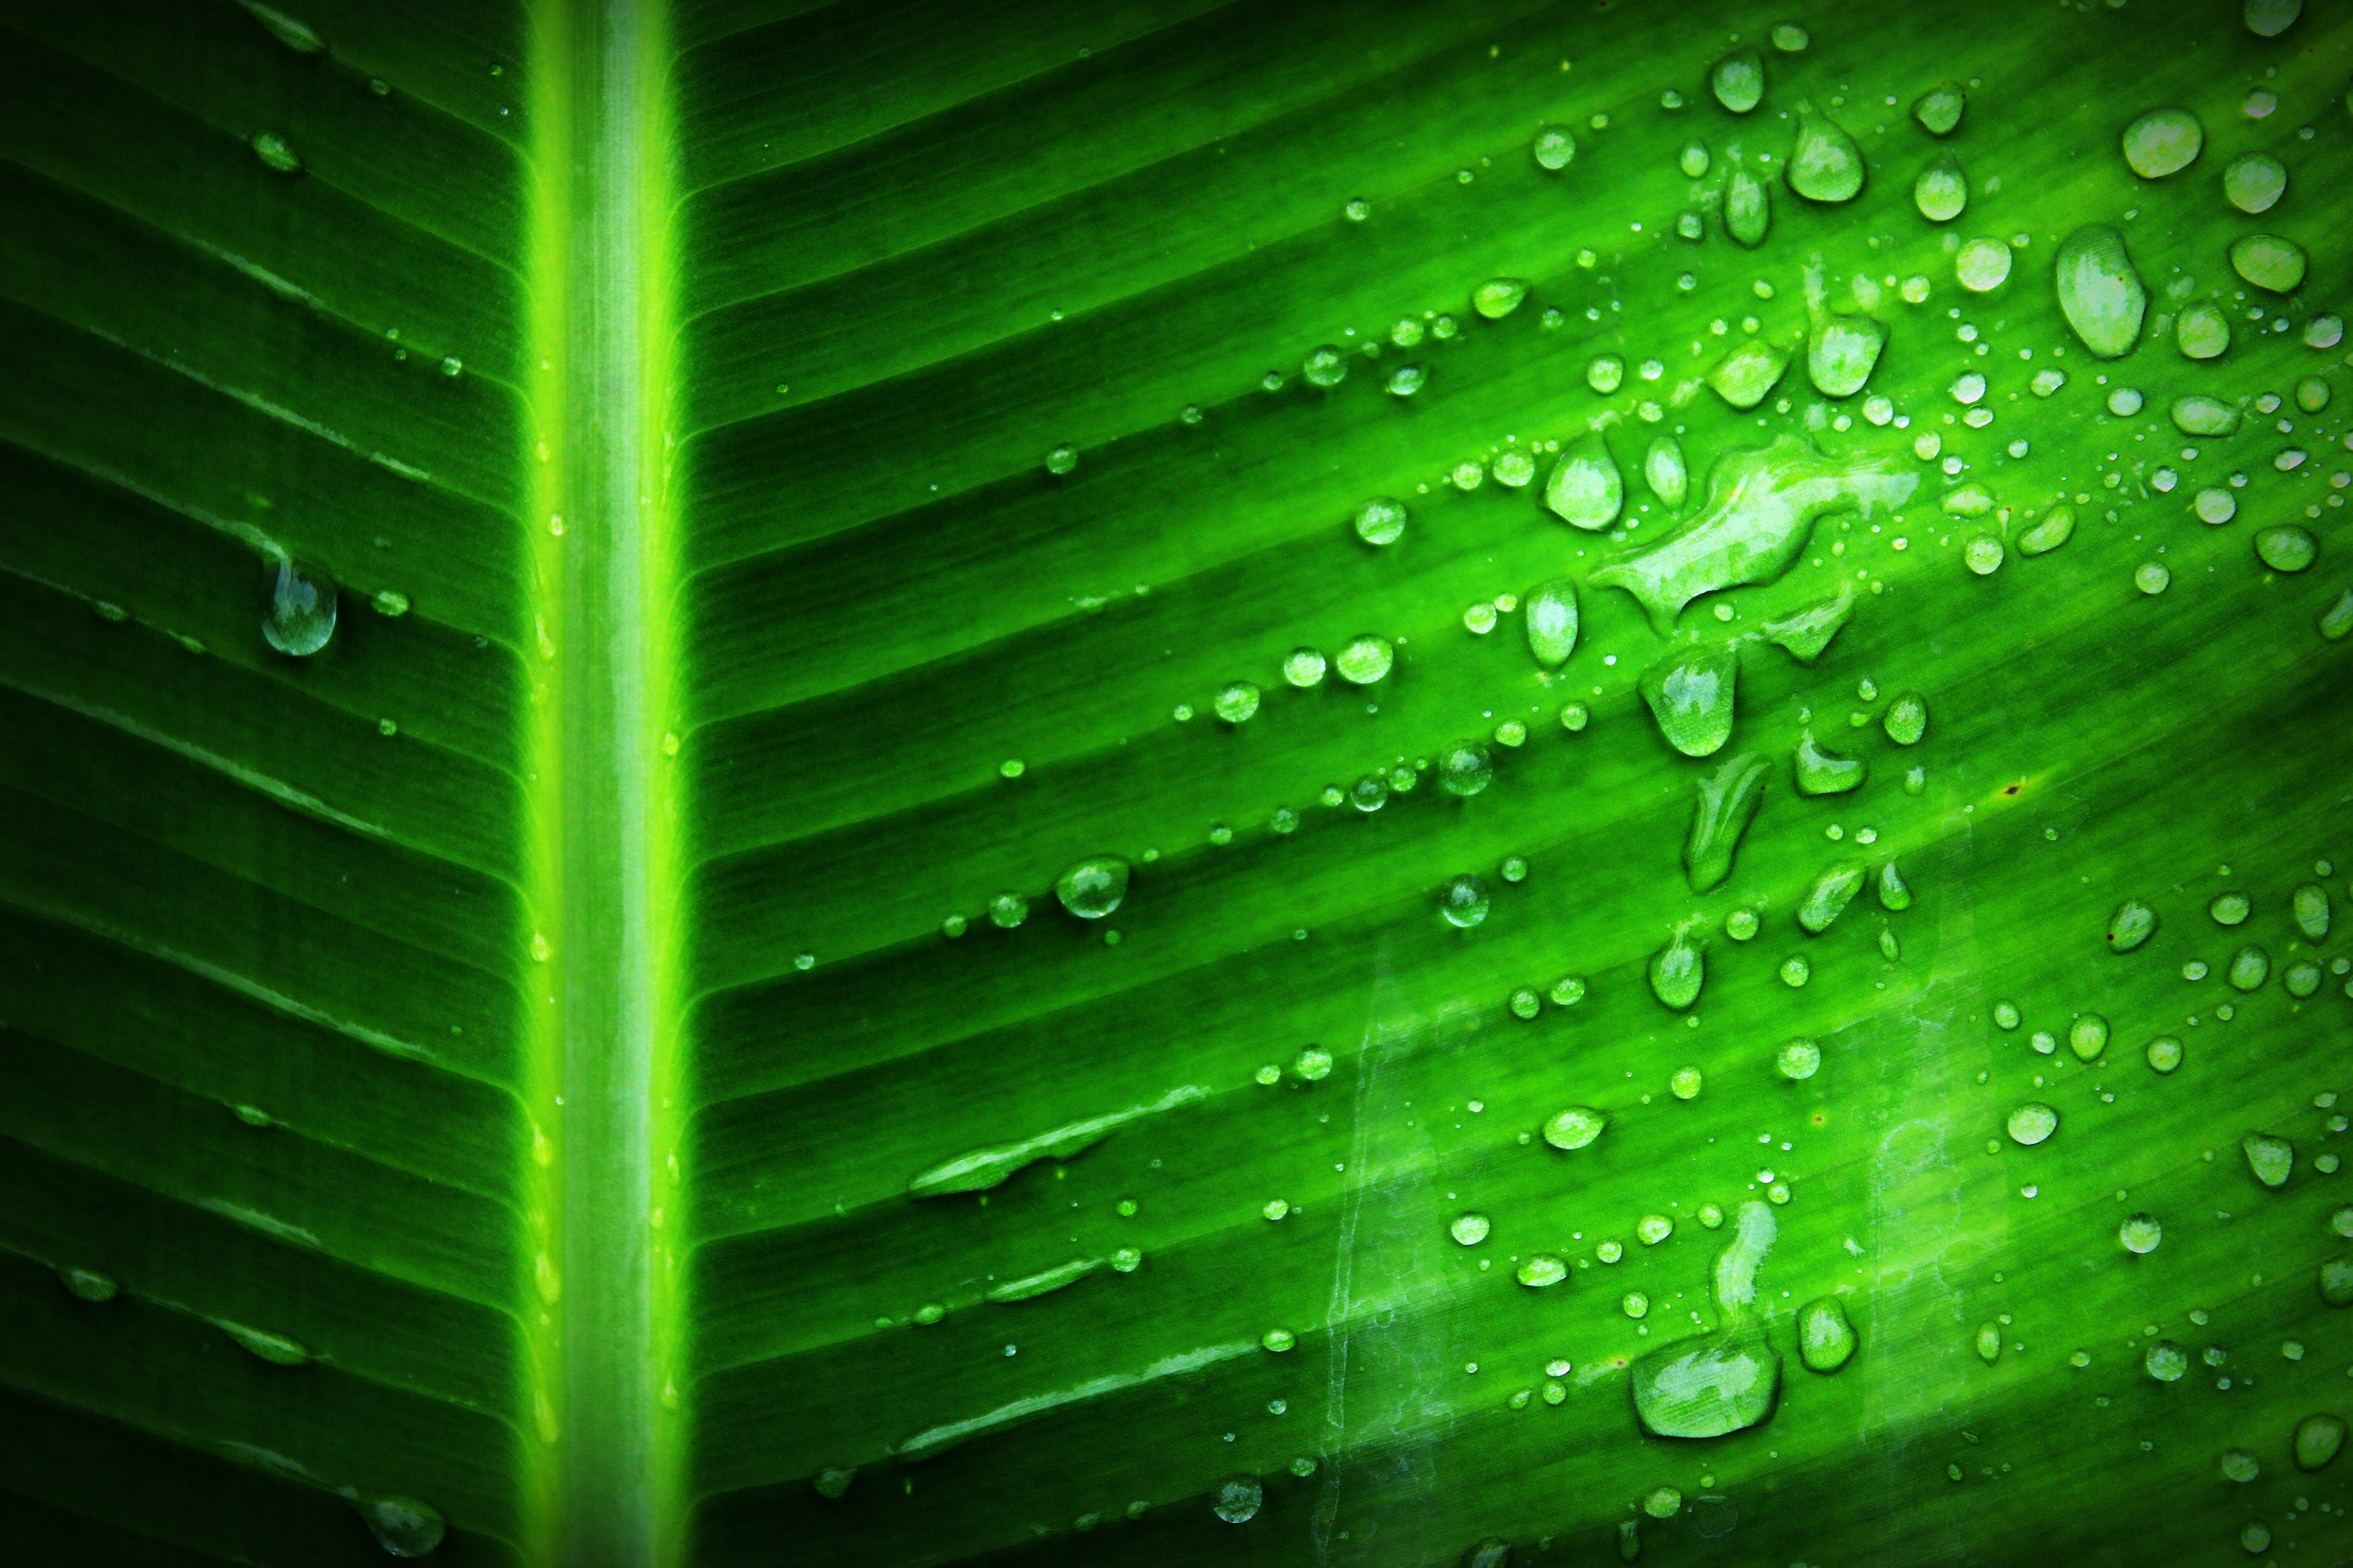 Green Banana Leaf With Substance of Clear Liquid